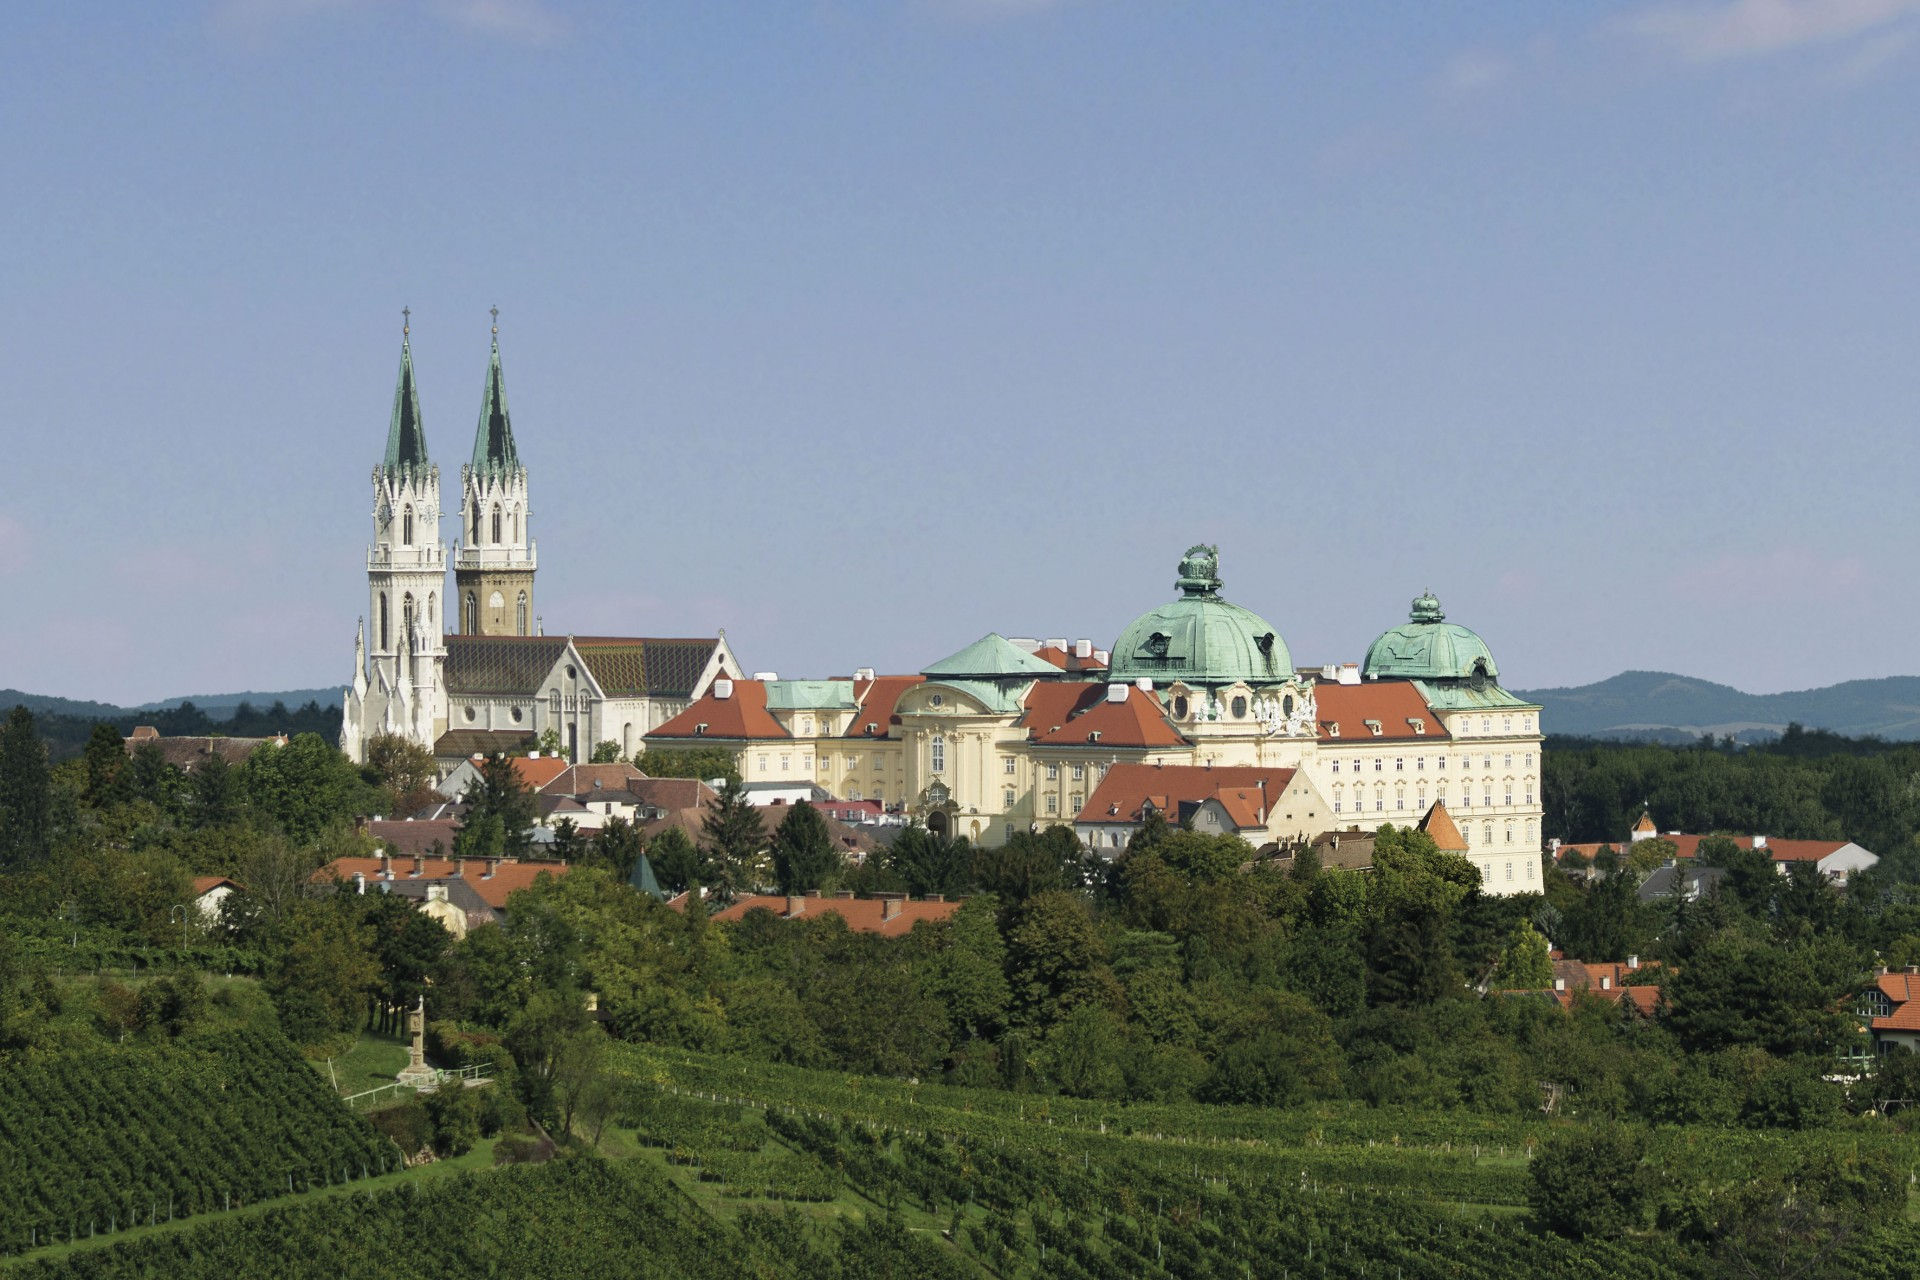 Klosterneuburg Abbey, © Michael Zechany